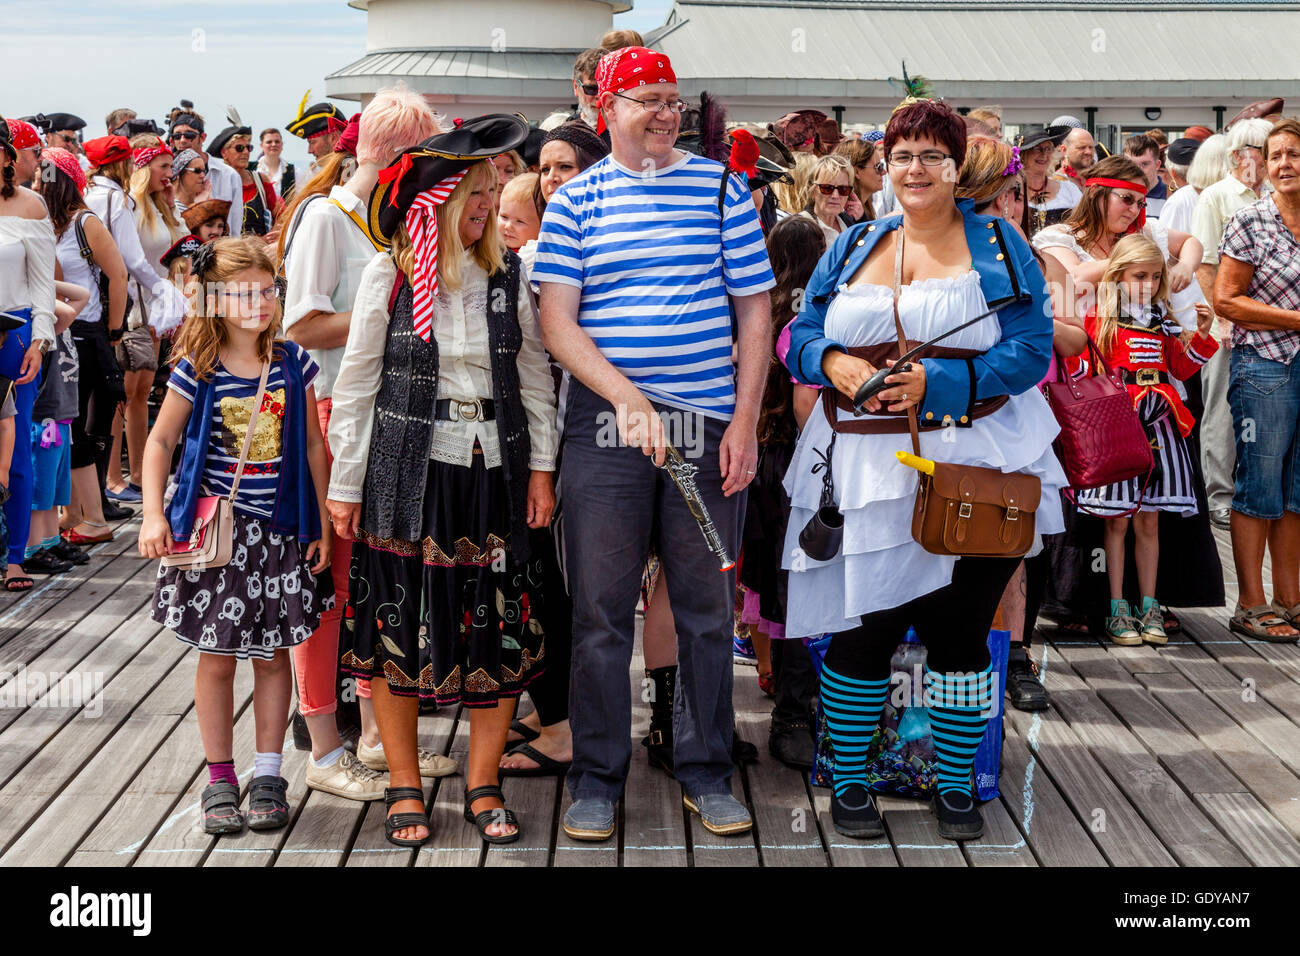 People Dressed In Pirate Costumes Pose For A Group Photo On Hastings Pier During The Hastings Pirate Day Festival Hastings UK  sc 1 st  Alamy & People Dressed In Pirate Costumes Pose For A Group Photo On Hastings ...